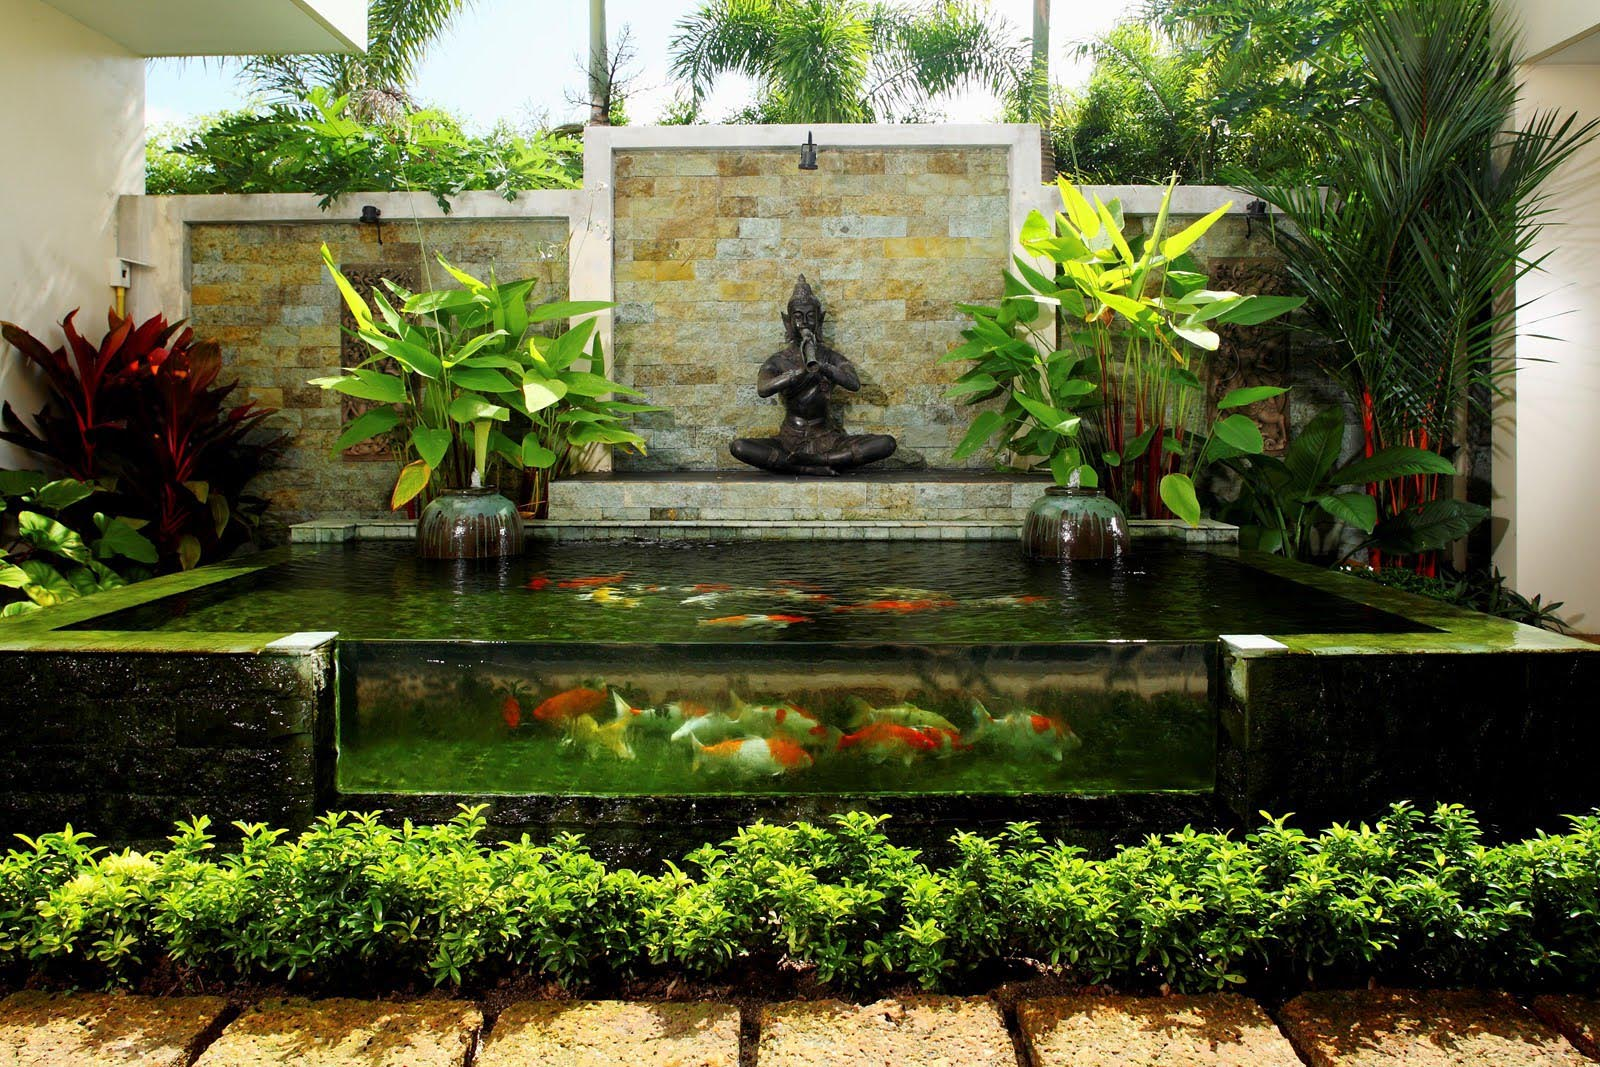 Building garden pond fountains backyard design ideas Pond with fountain